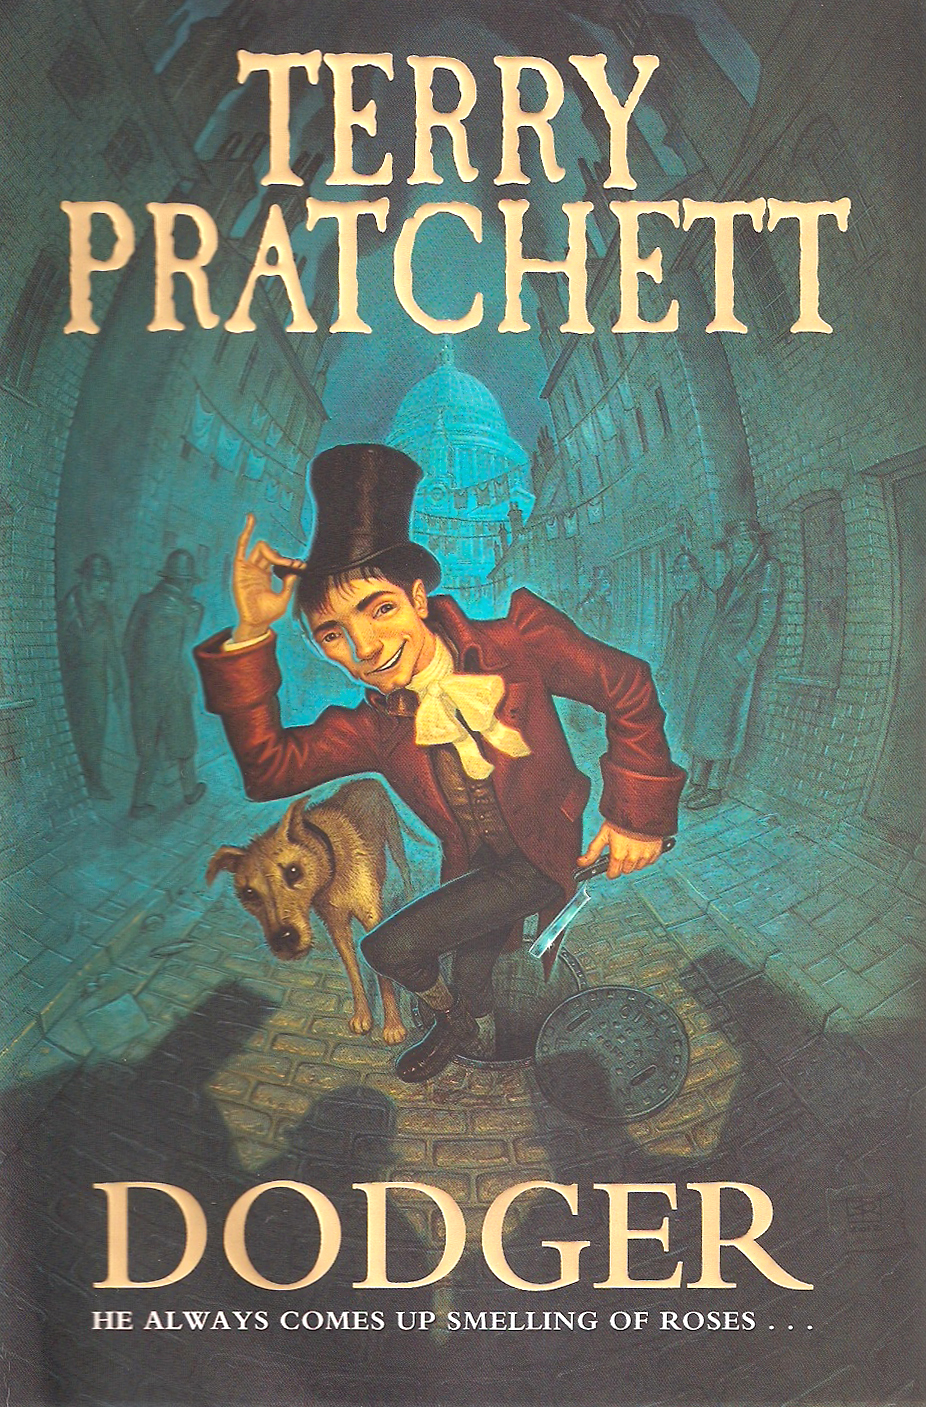 Hurray for Terry Pratchett by Elizabeth Hawksley | Buzz about Books